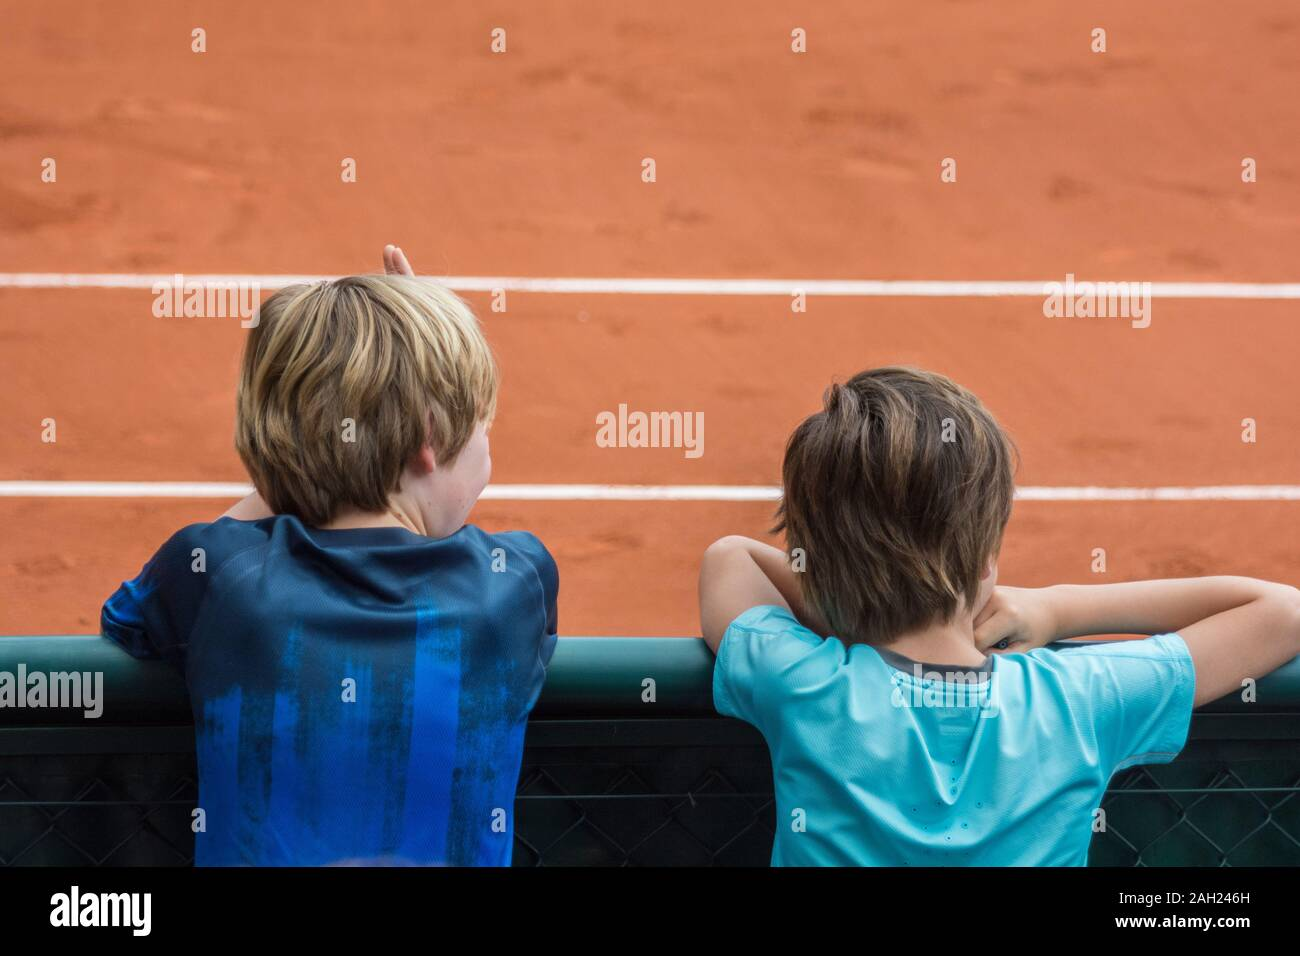 Two kids, facing backwards, watching a Tennis game in a clay court, during the French open tournament, officially  Roland-Garros, Paris, France Stock Photo